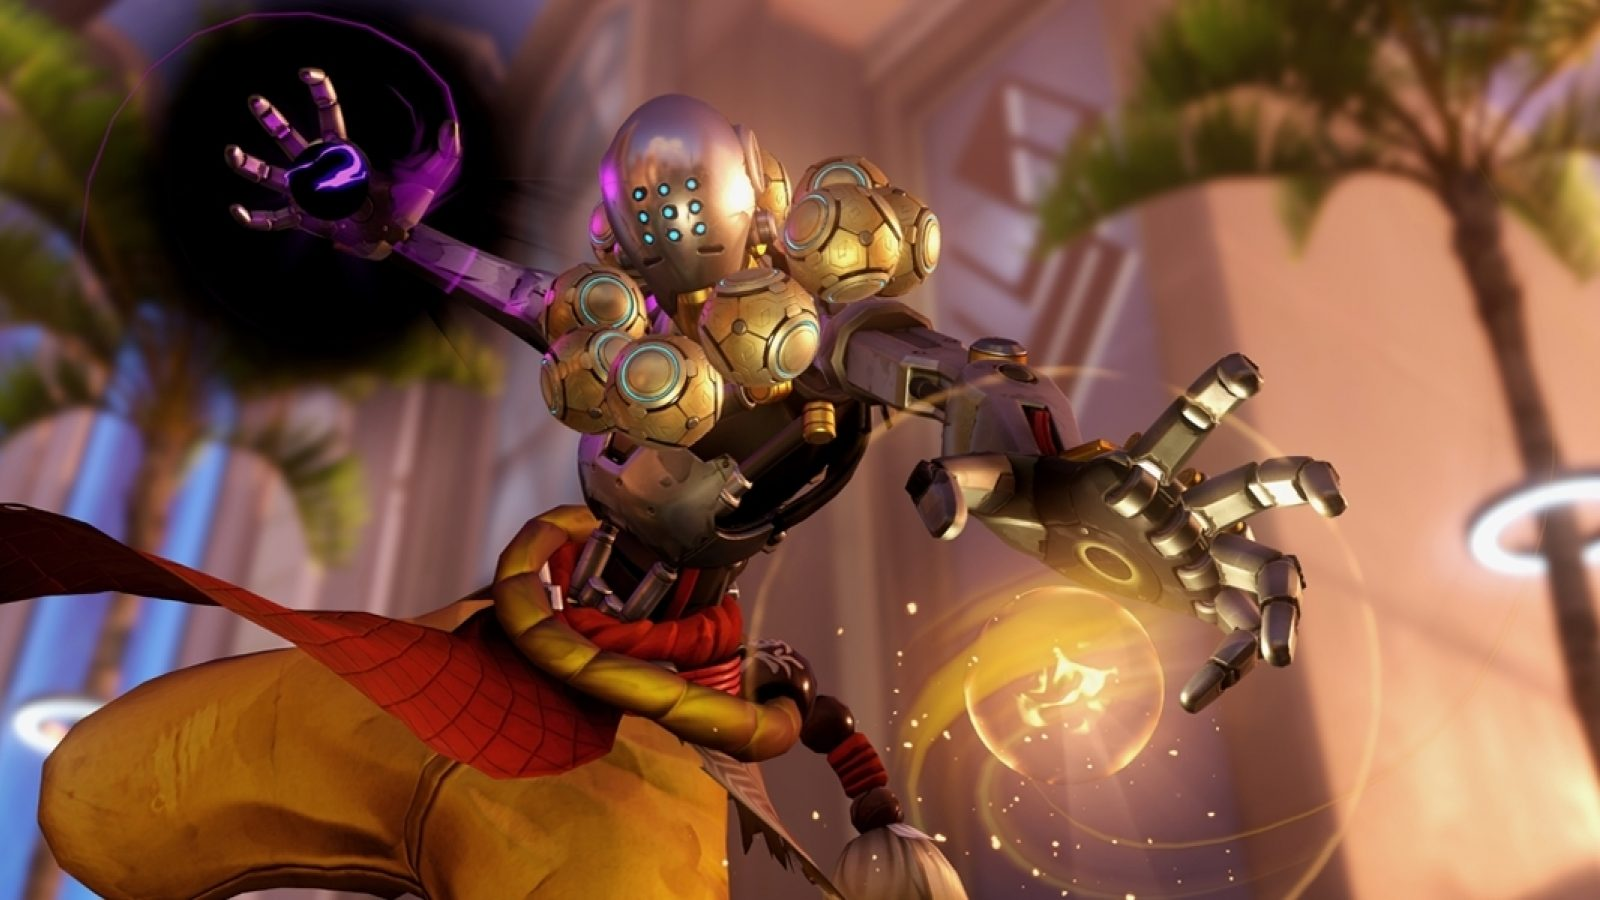 Zenyatta attacks